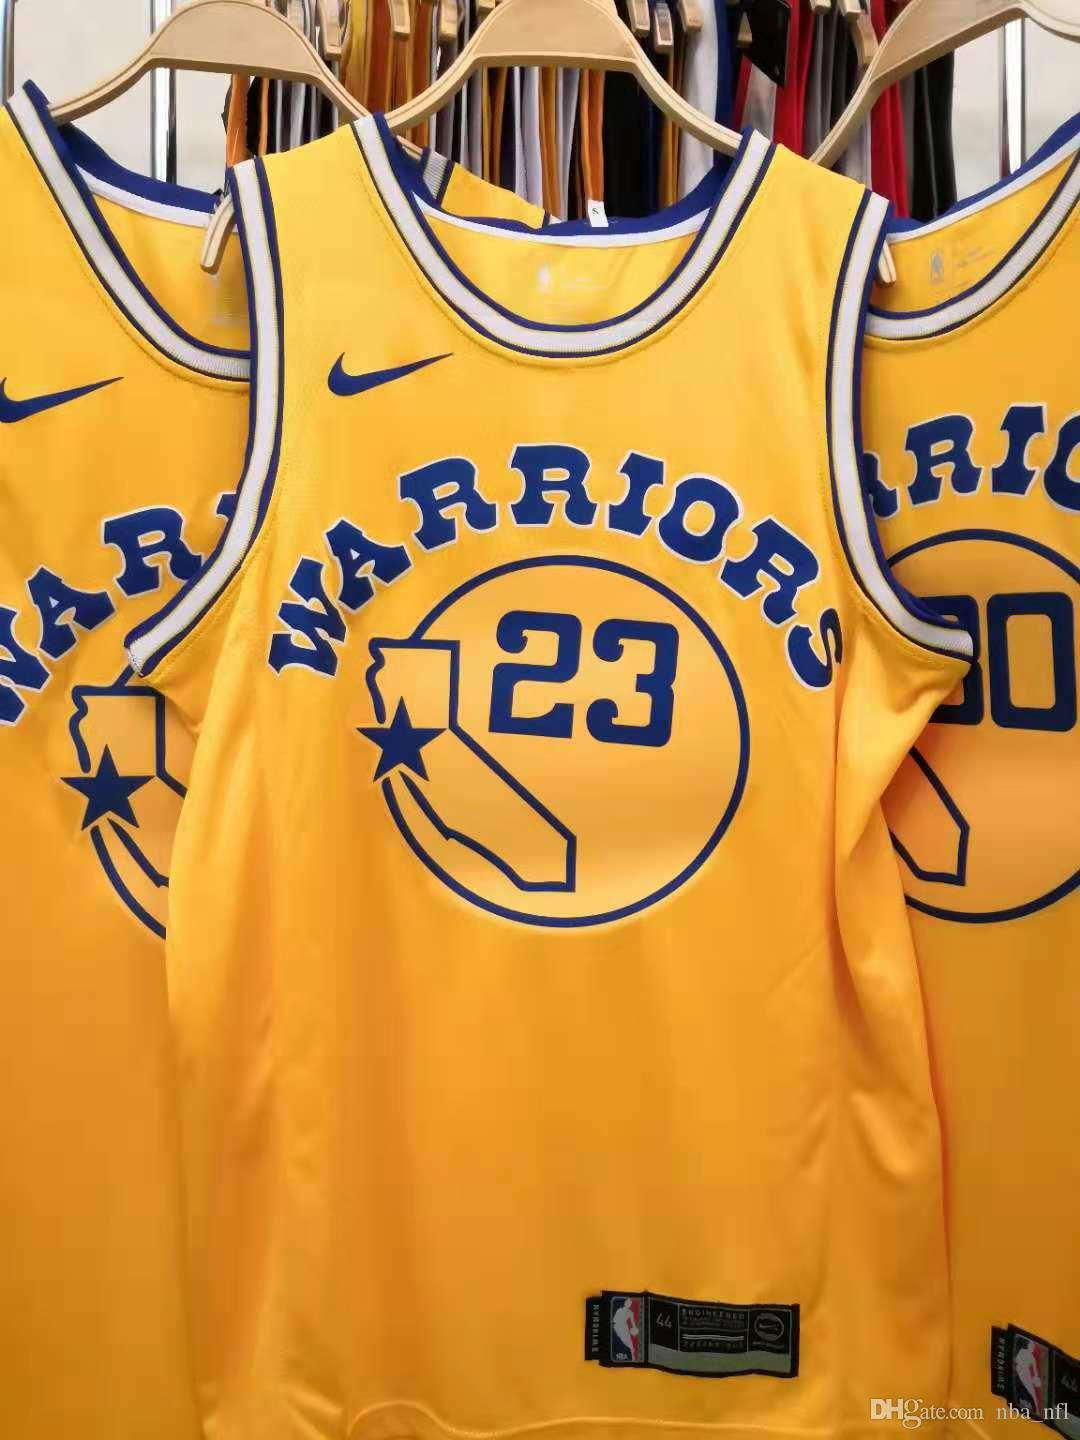 online store e4026 c9625 2020 Mens Warrior 23# Draymond Green Retro Yellow Swingman Basketball  Jersey AU Hot Pressing Printed Name Number Authentic US Size XXS-XXL